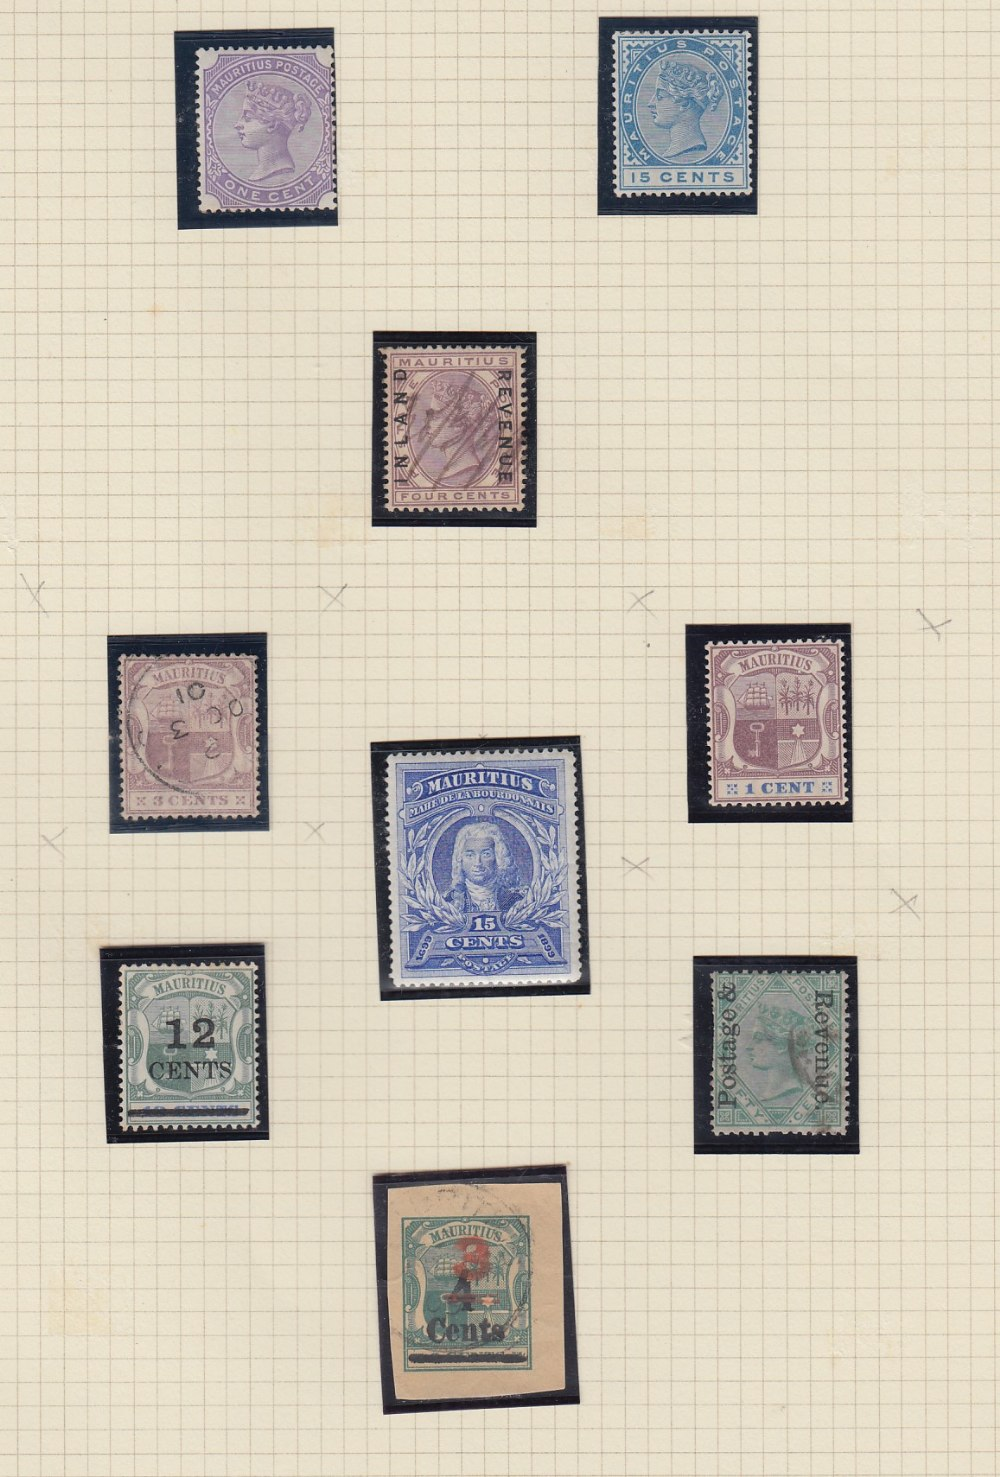 STAMPS MAURITIUS Collection mint and used QV to QEII, a few early classics, 1900 1r mint, - Image 2 of 3